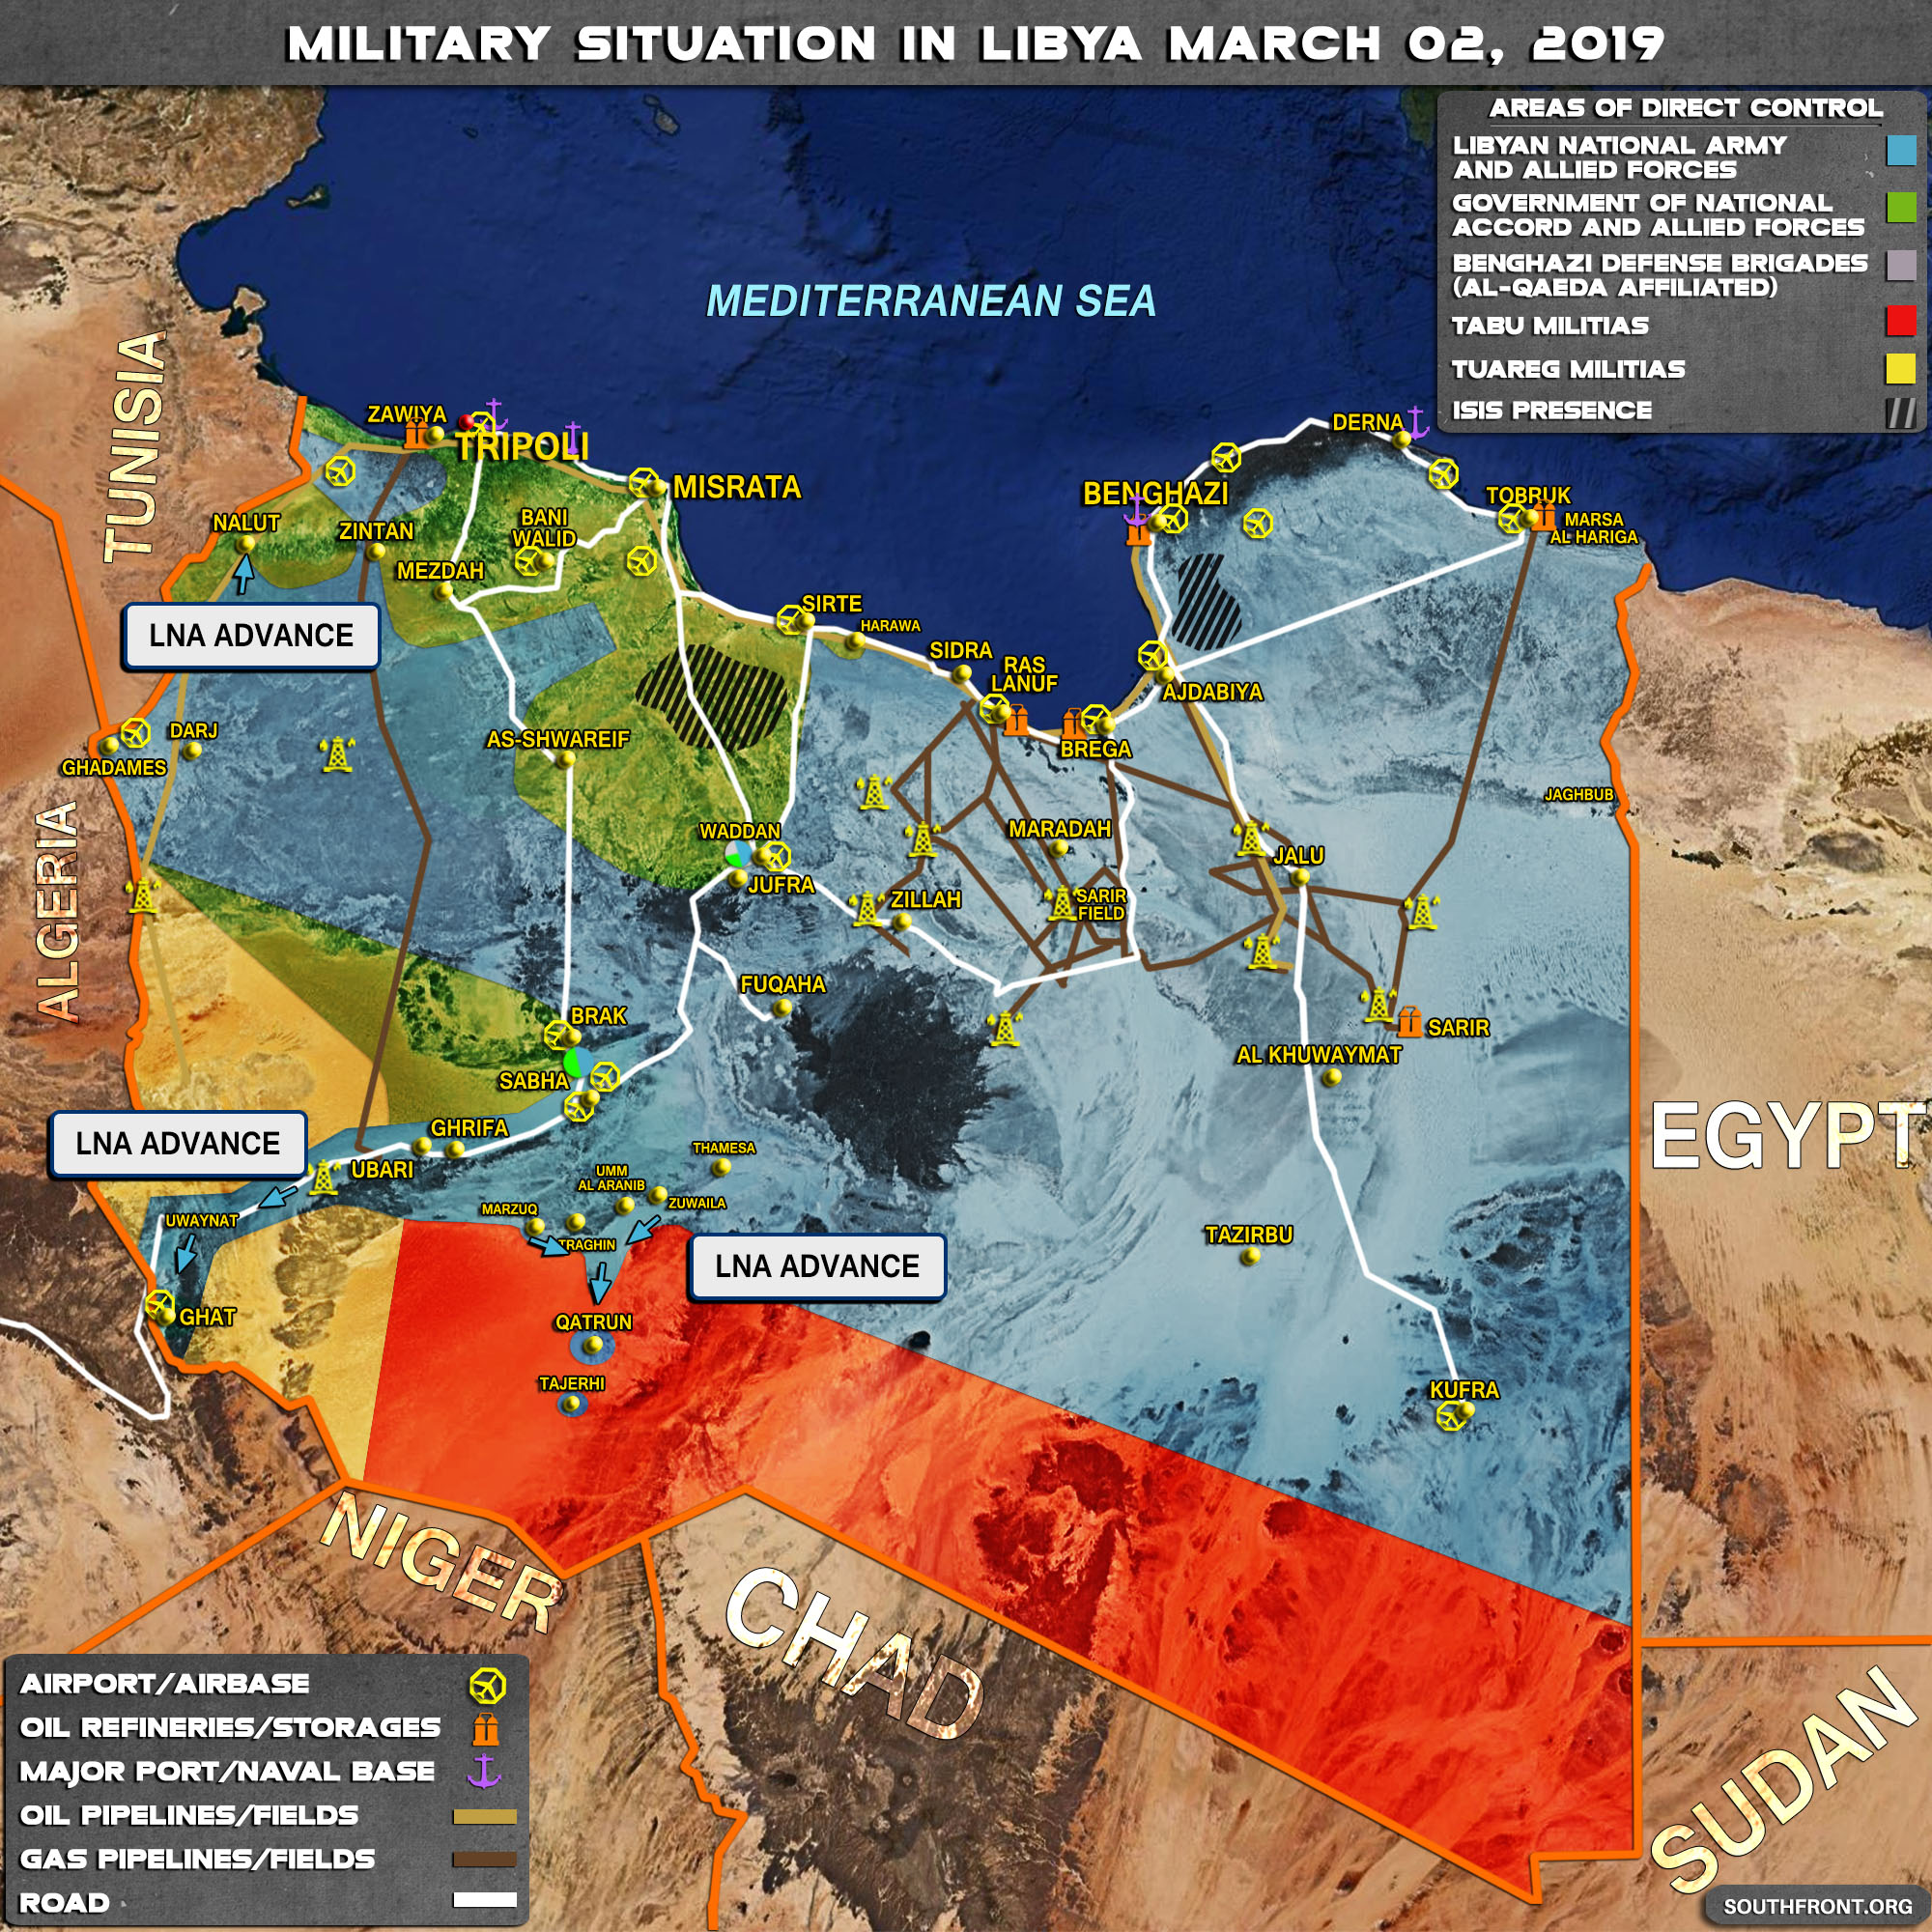 2march_Libyan_War_Map.jpg